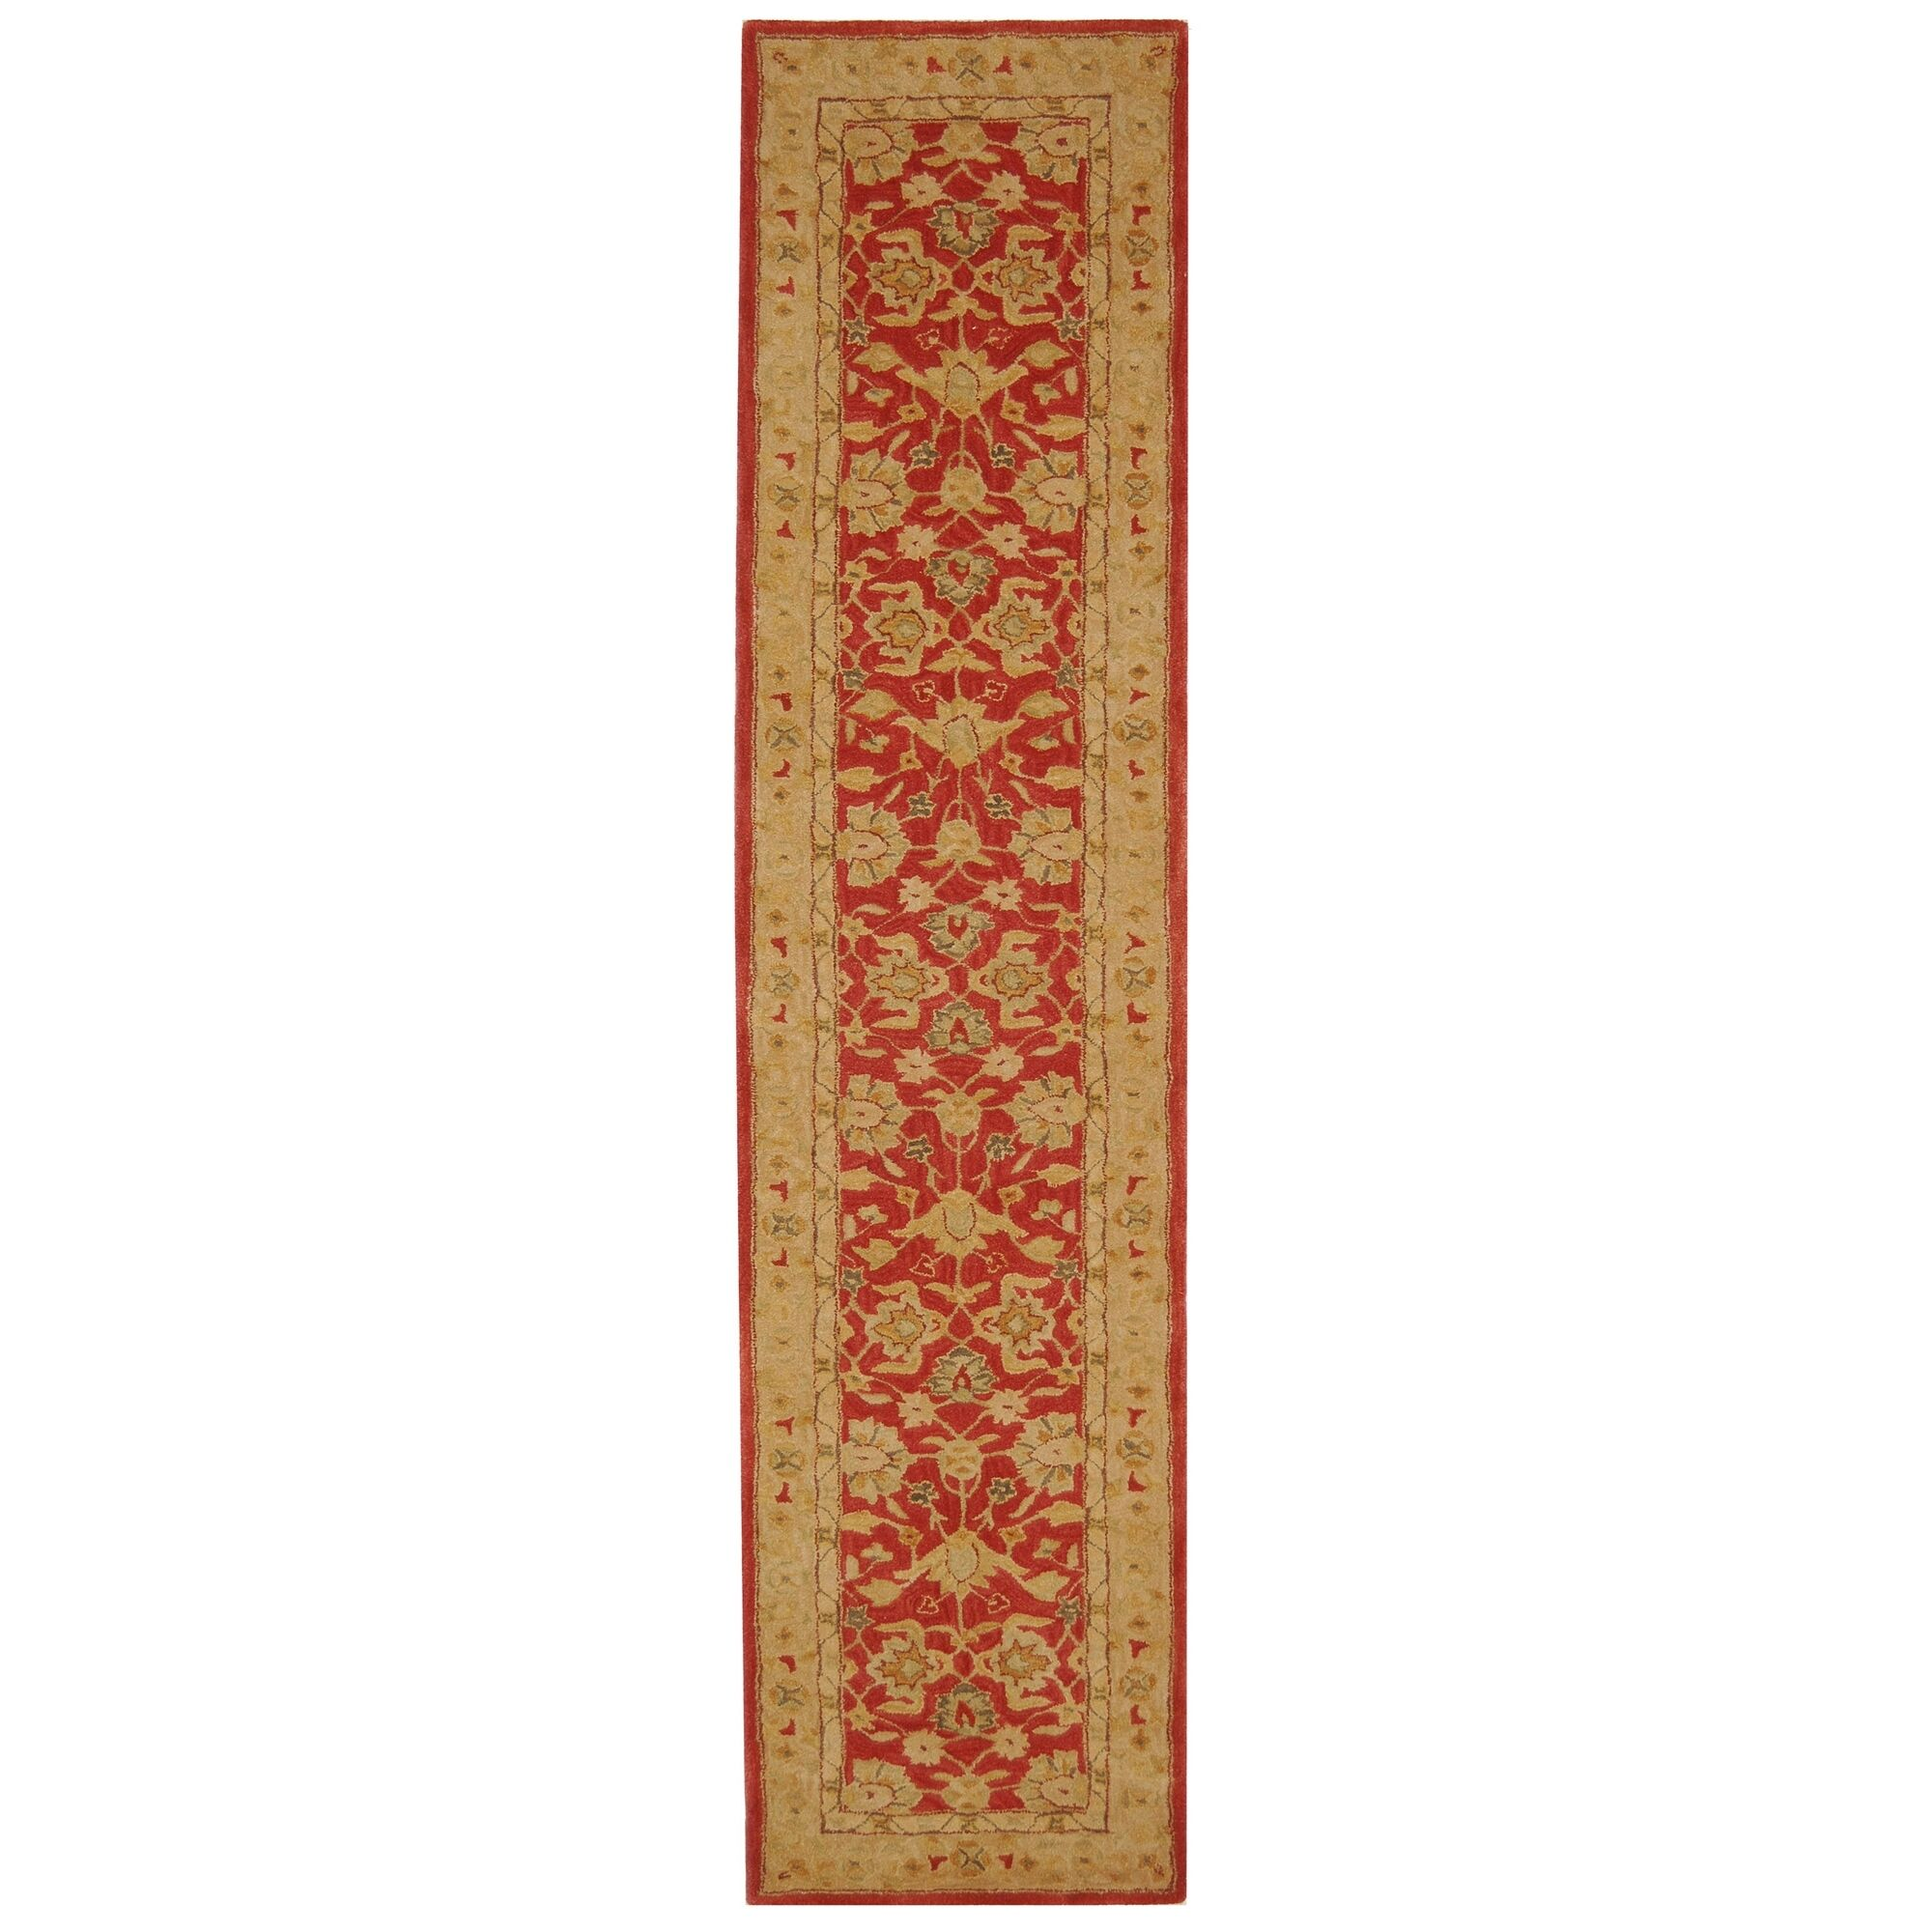 Pritchard Hand-Tufted/Hand-Hooked  Red/Ivory Area Rug Rug Size: Runner 2'3